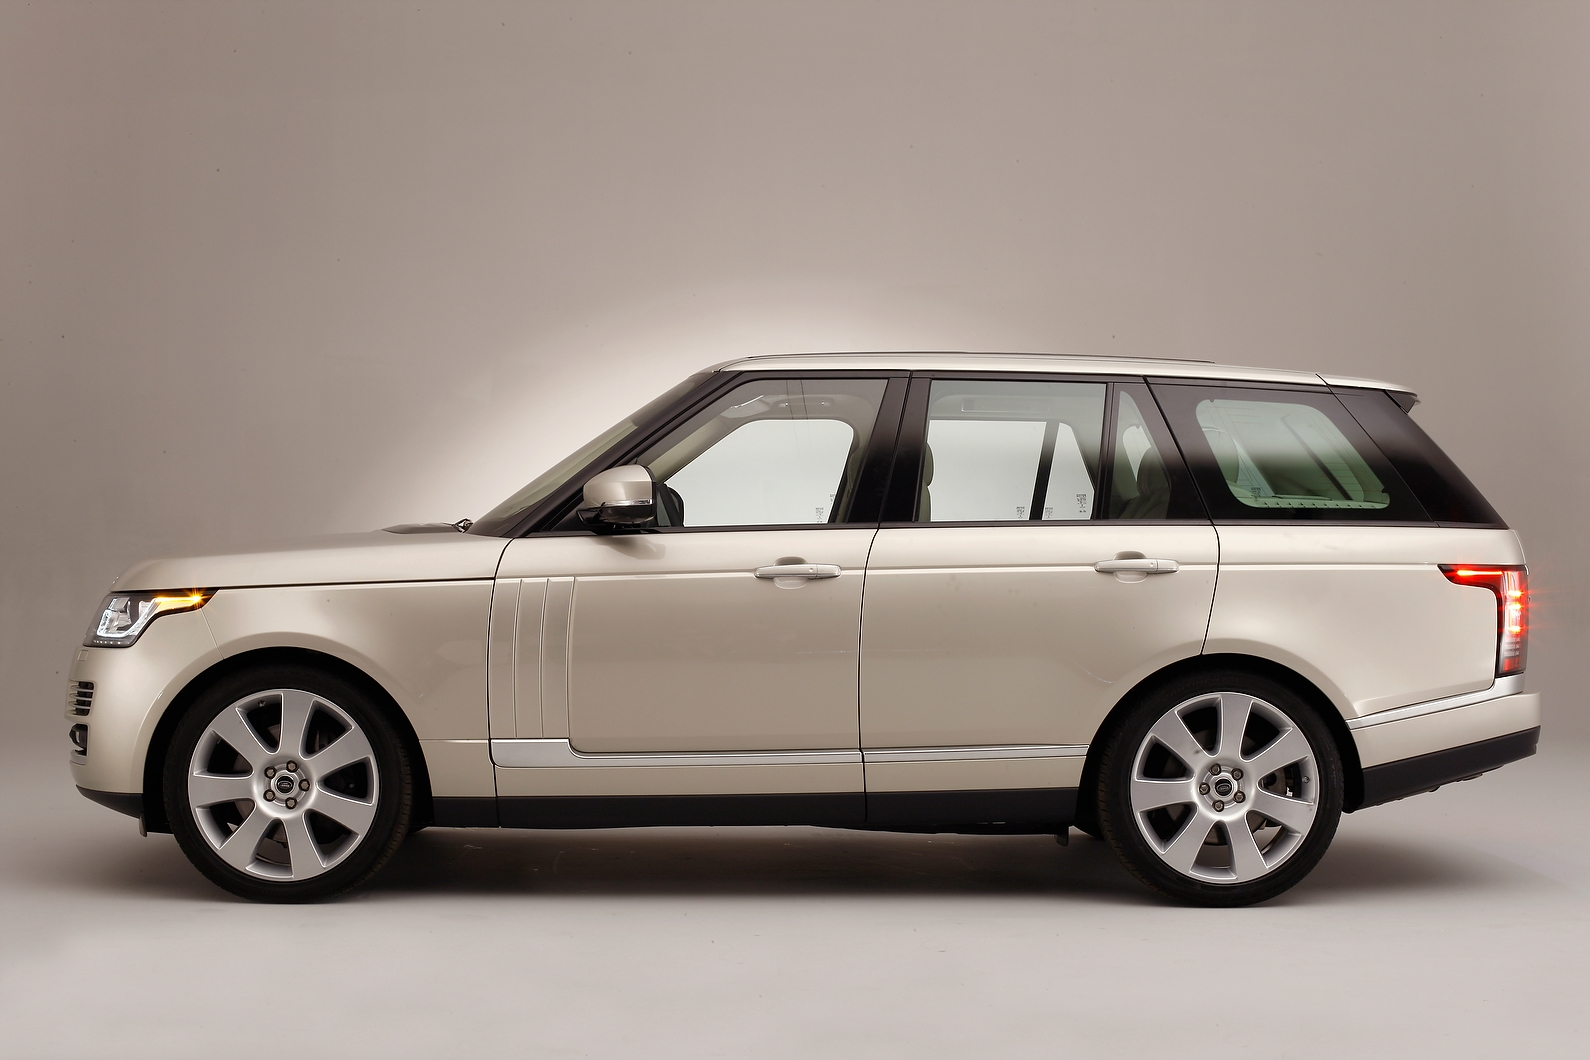 The all new Range Rover The best SUV Free Download Image